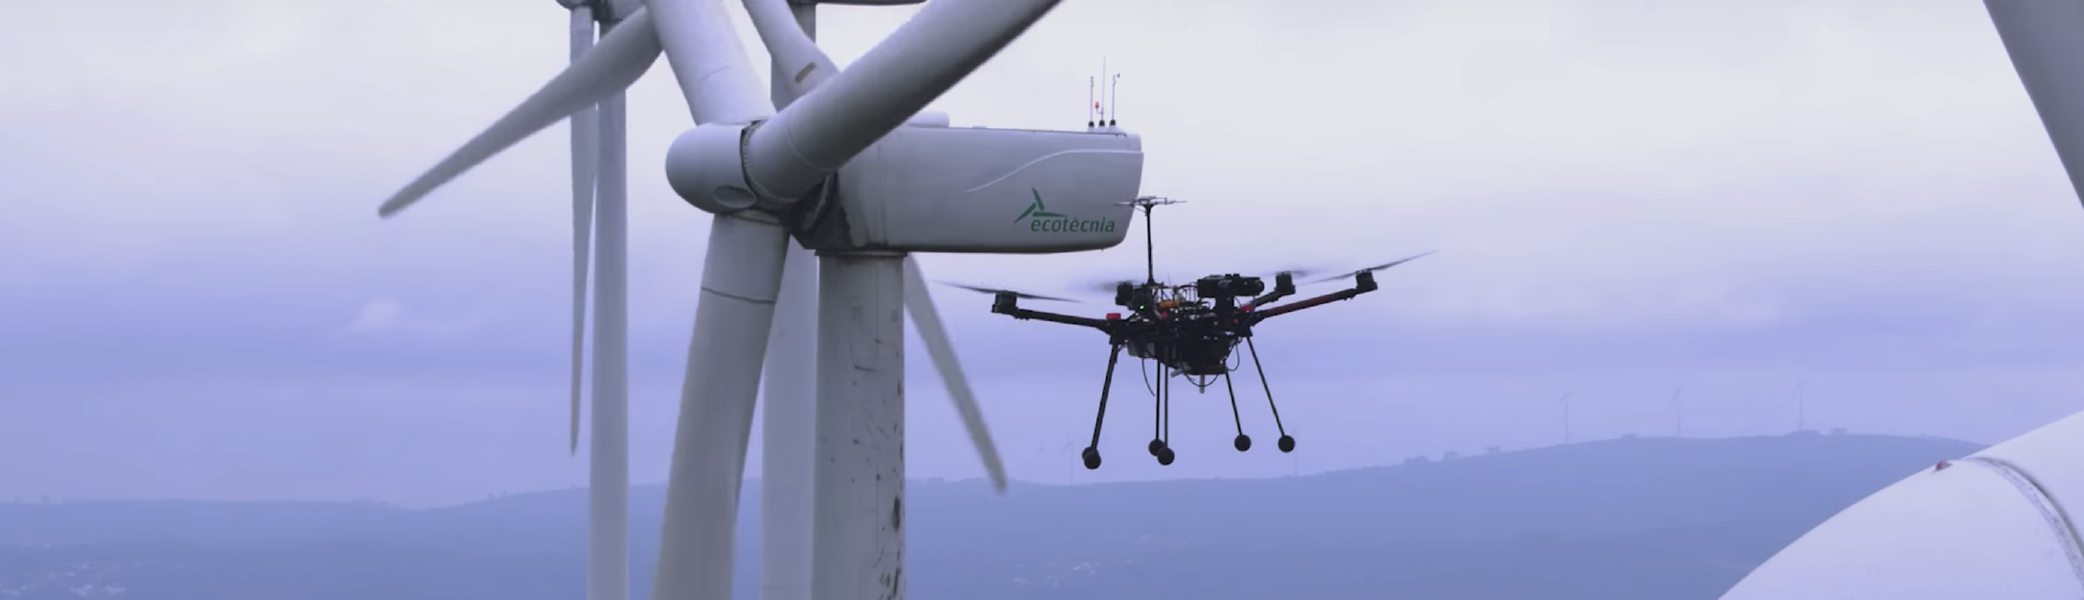 Customizable drone for inspection of electrical assets